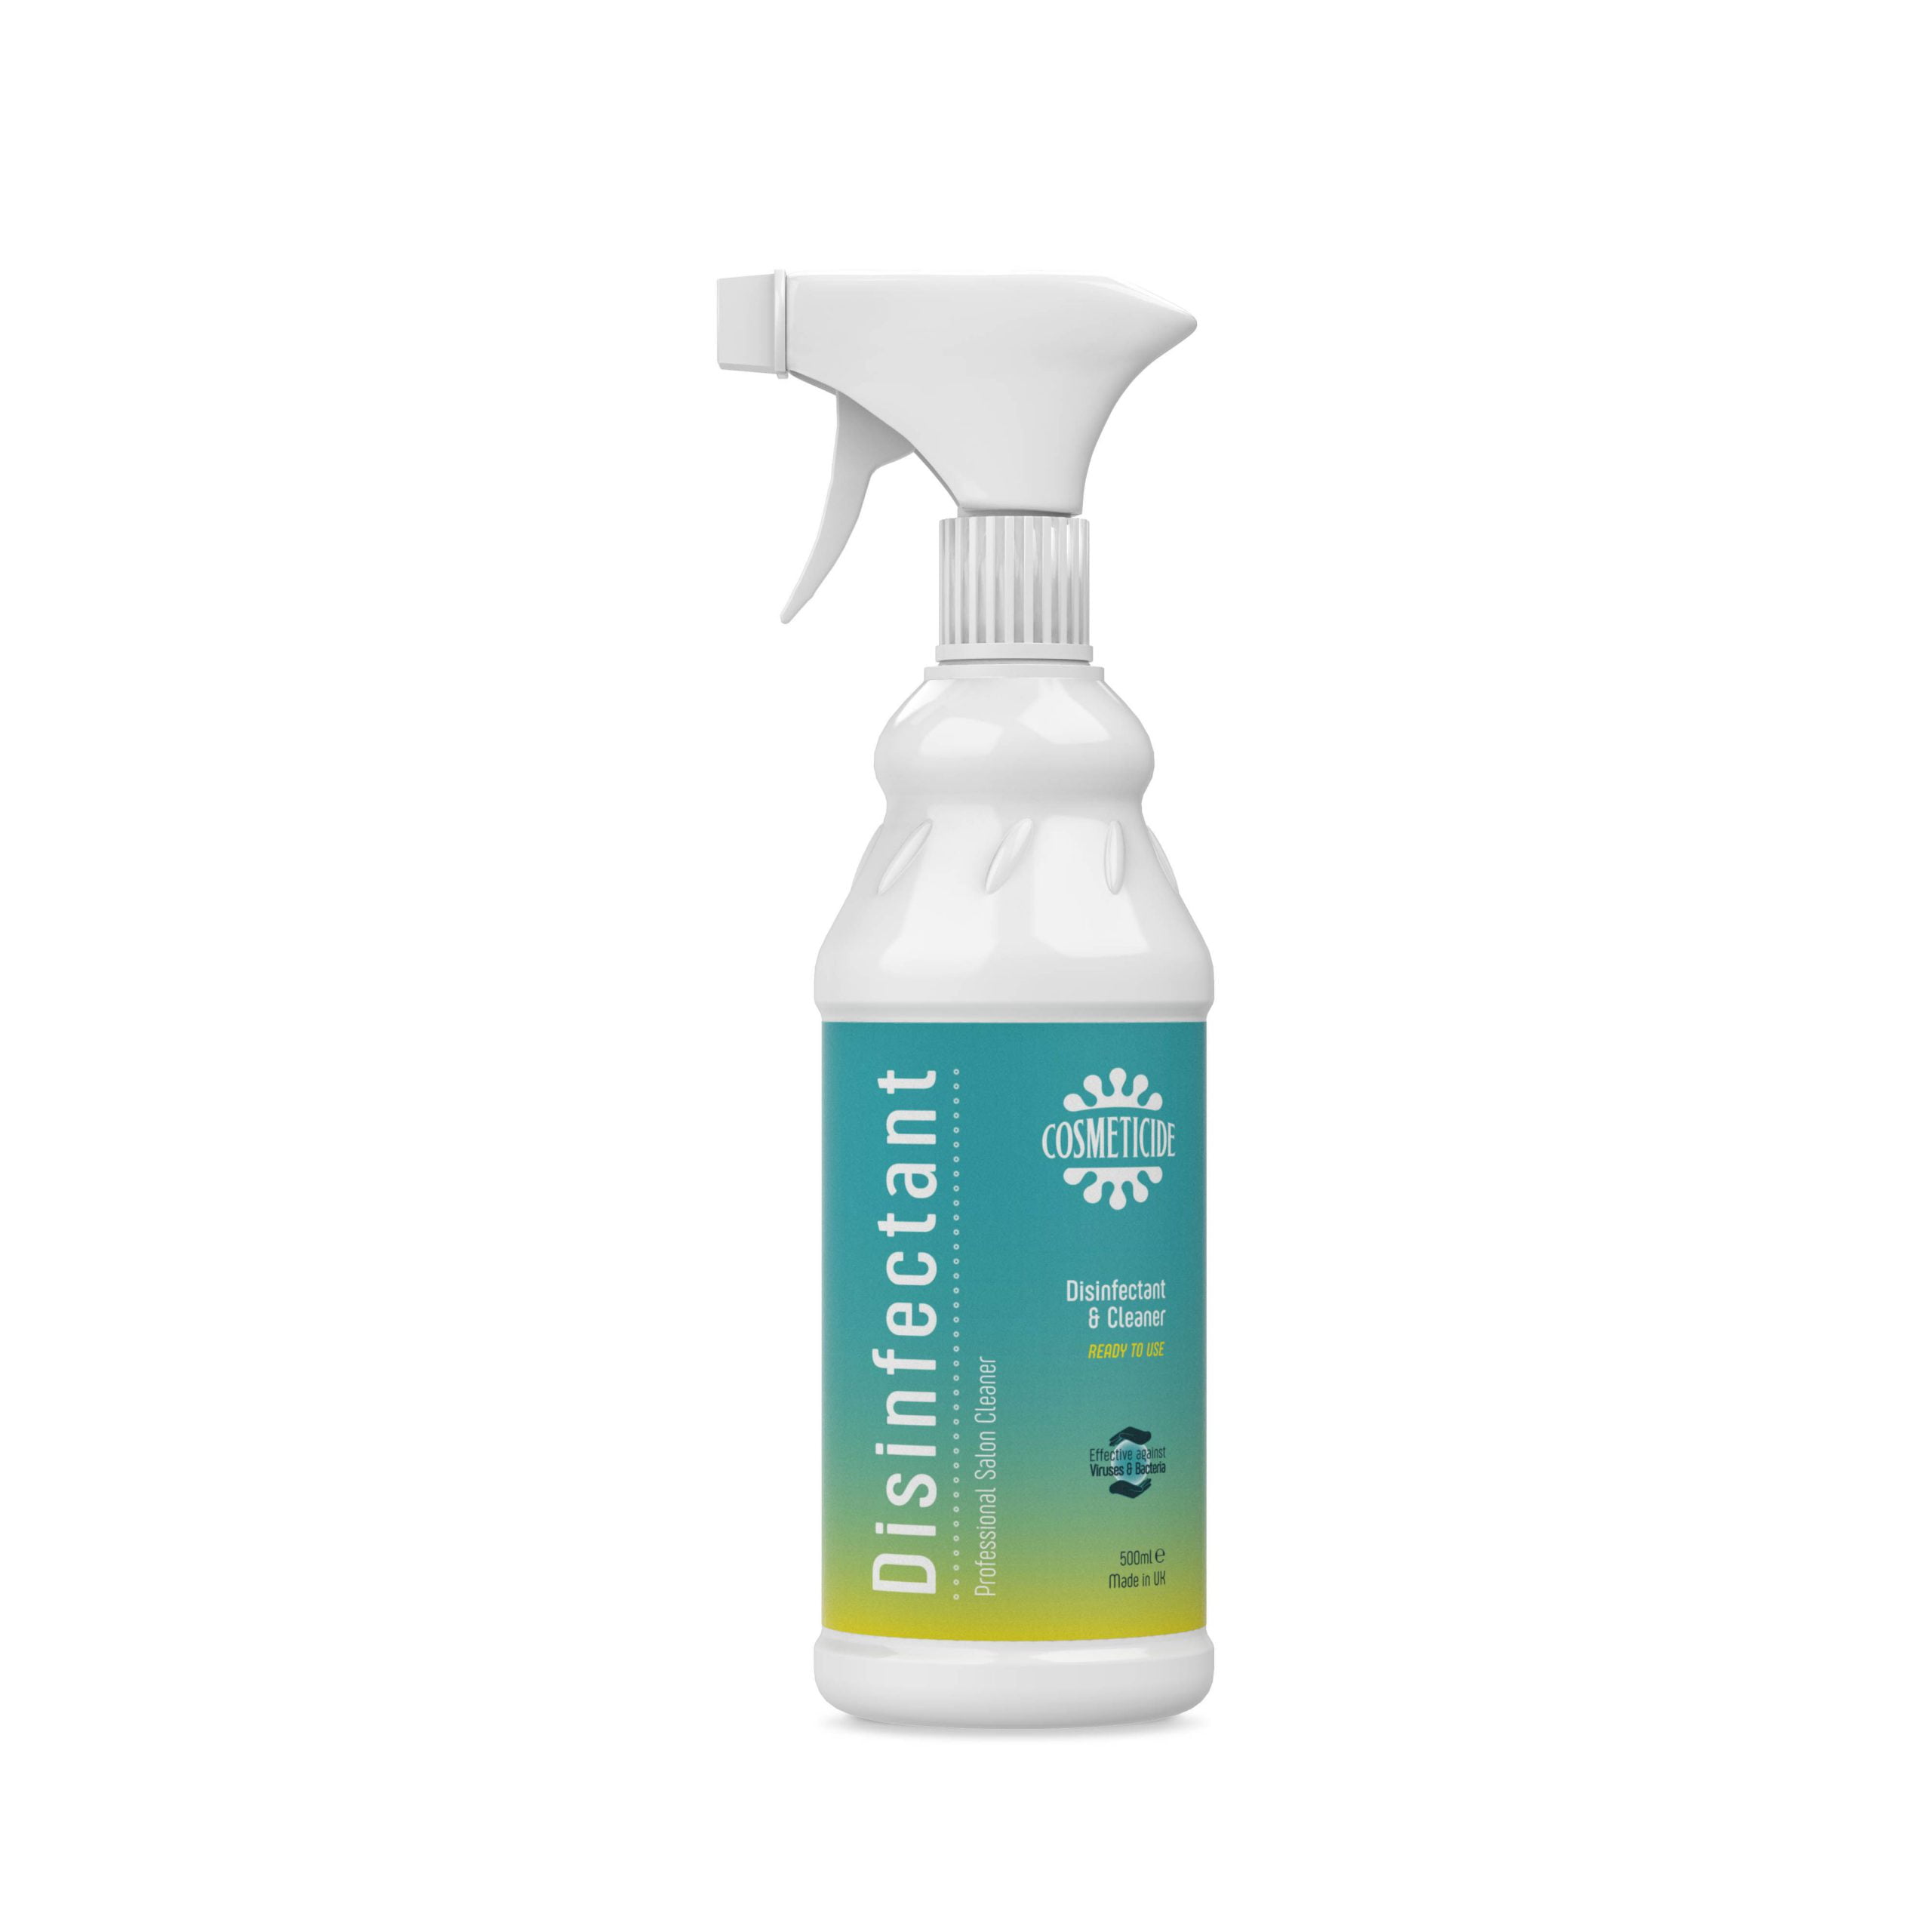 Halo Cosmeticide – Desinfectant 500 Ml Spray